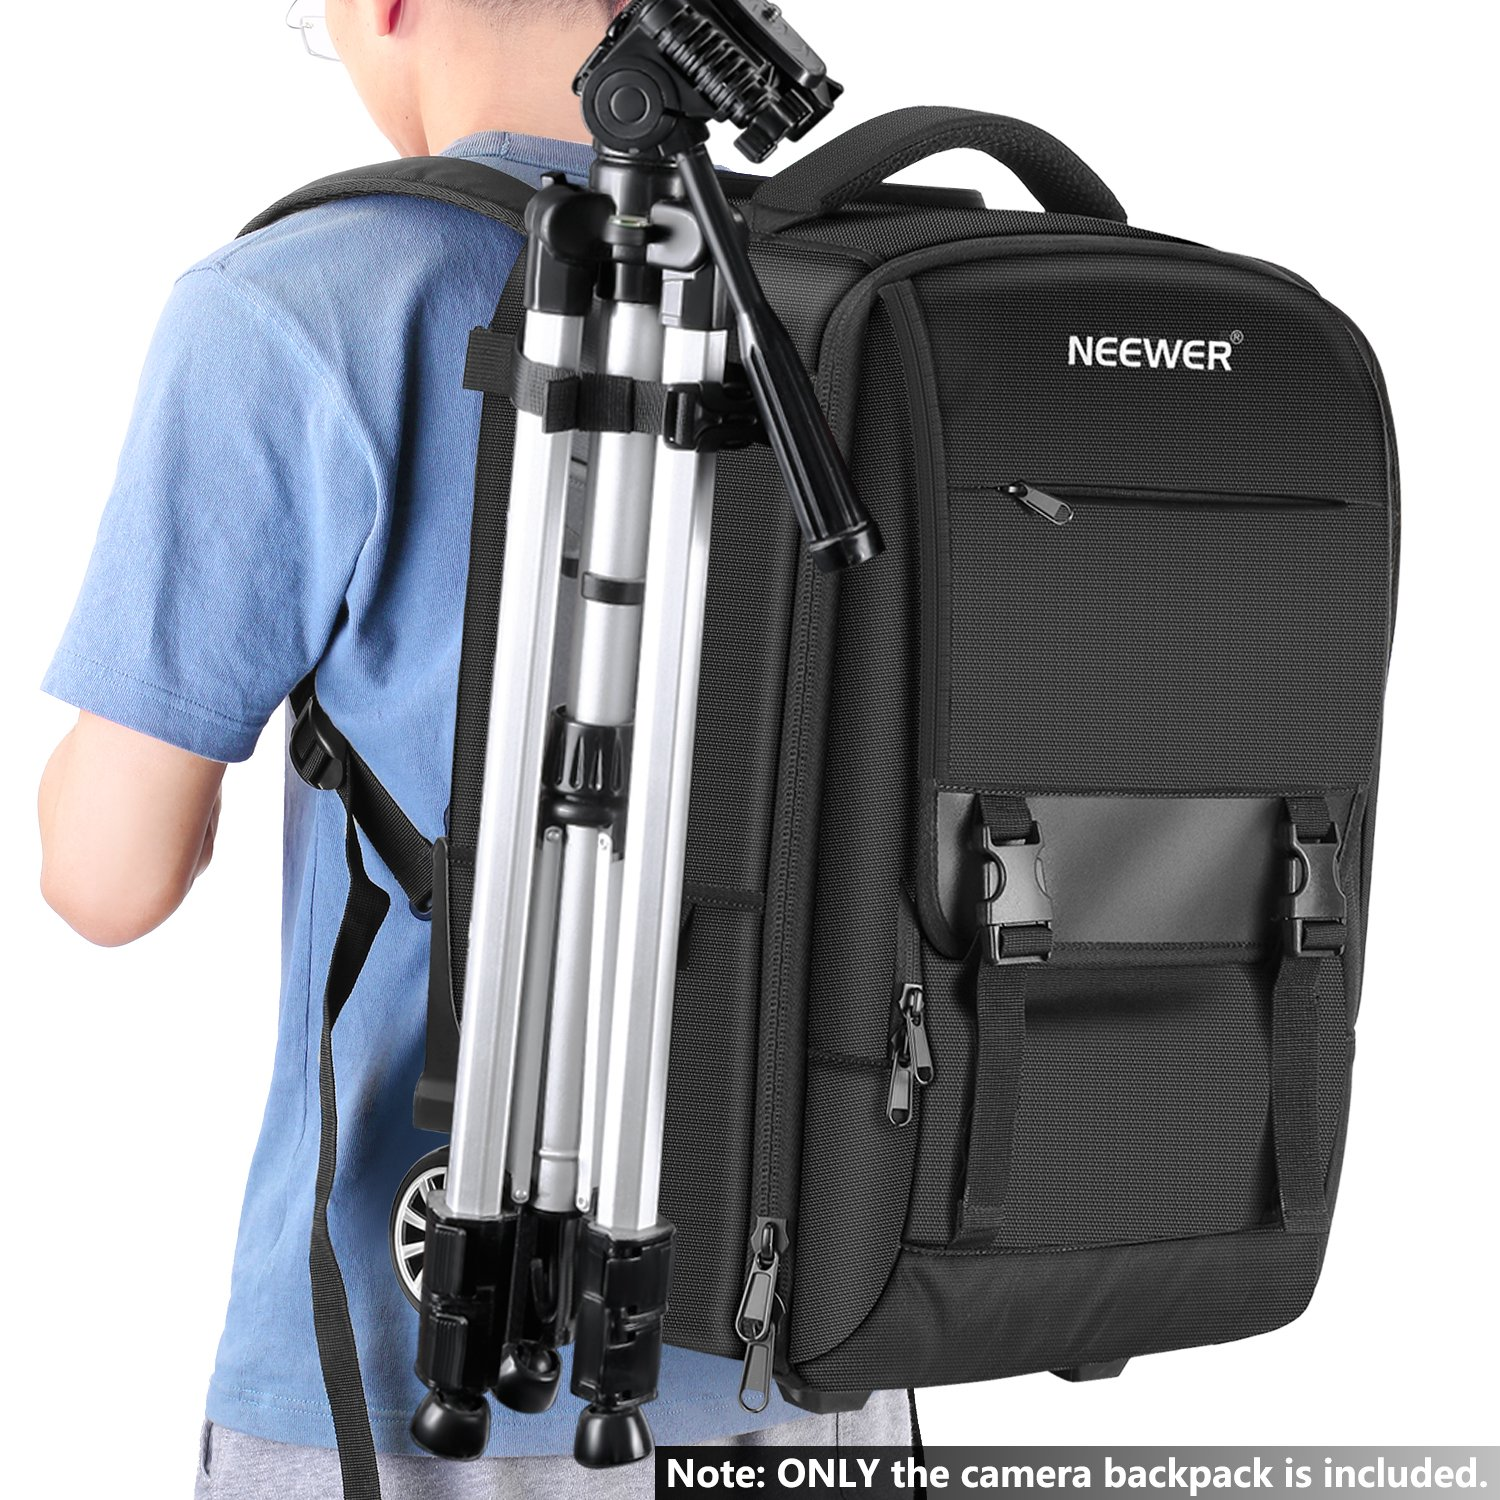 Neewer 2-in-1 Camera Backpack Luggage Trolley Case with Double Bar Lens for Air Travelling Waterproof for DSLR Cameras Anti-shock Detachable Padded Compartment Hidden Pull Bar and Strap Tripod